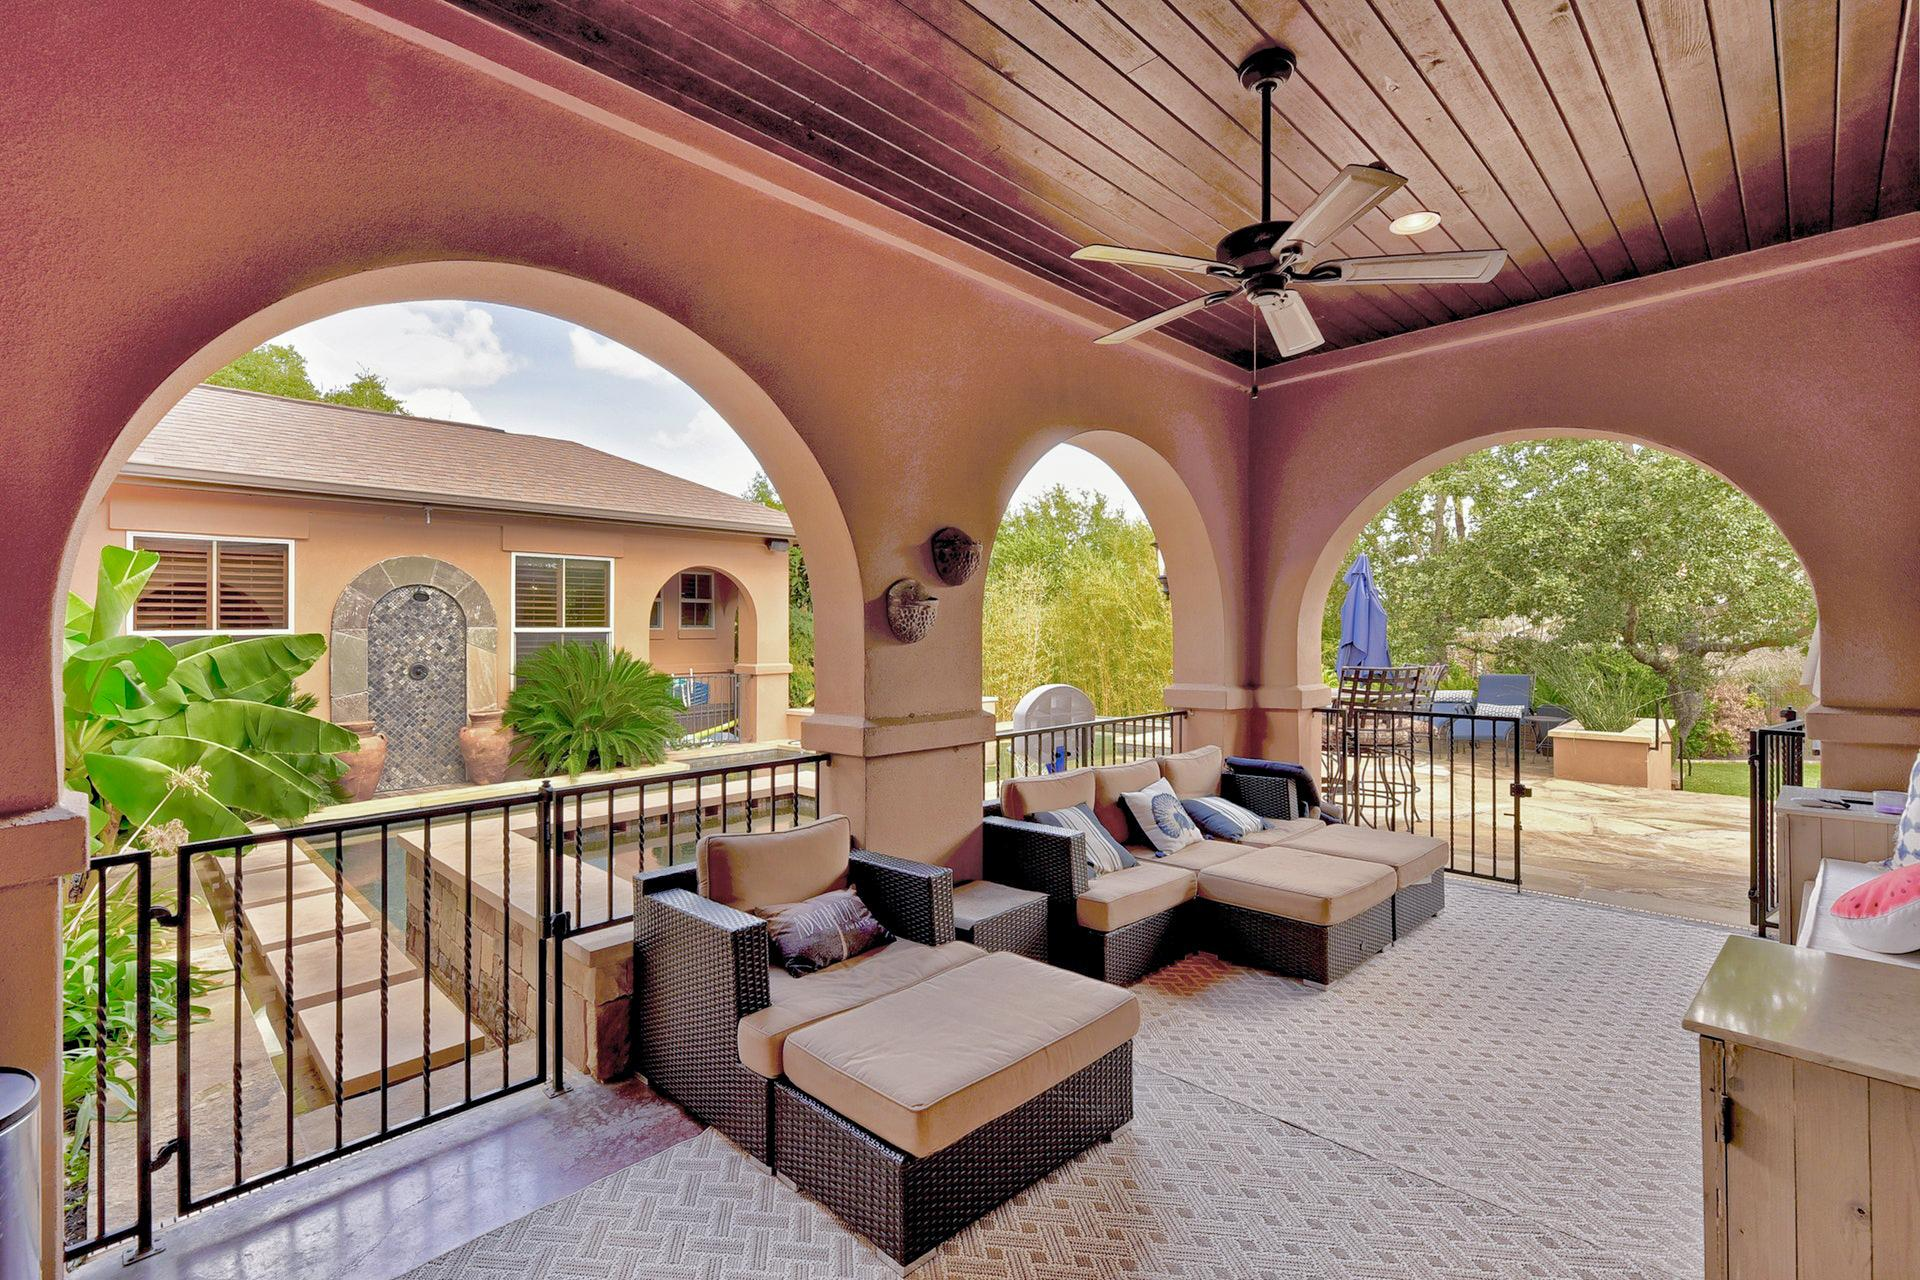 With cushioned seating and a ceiling fan, the covered patio offers an inviting space to unwind.